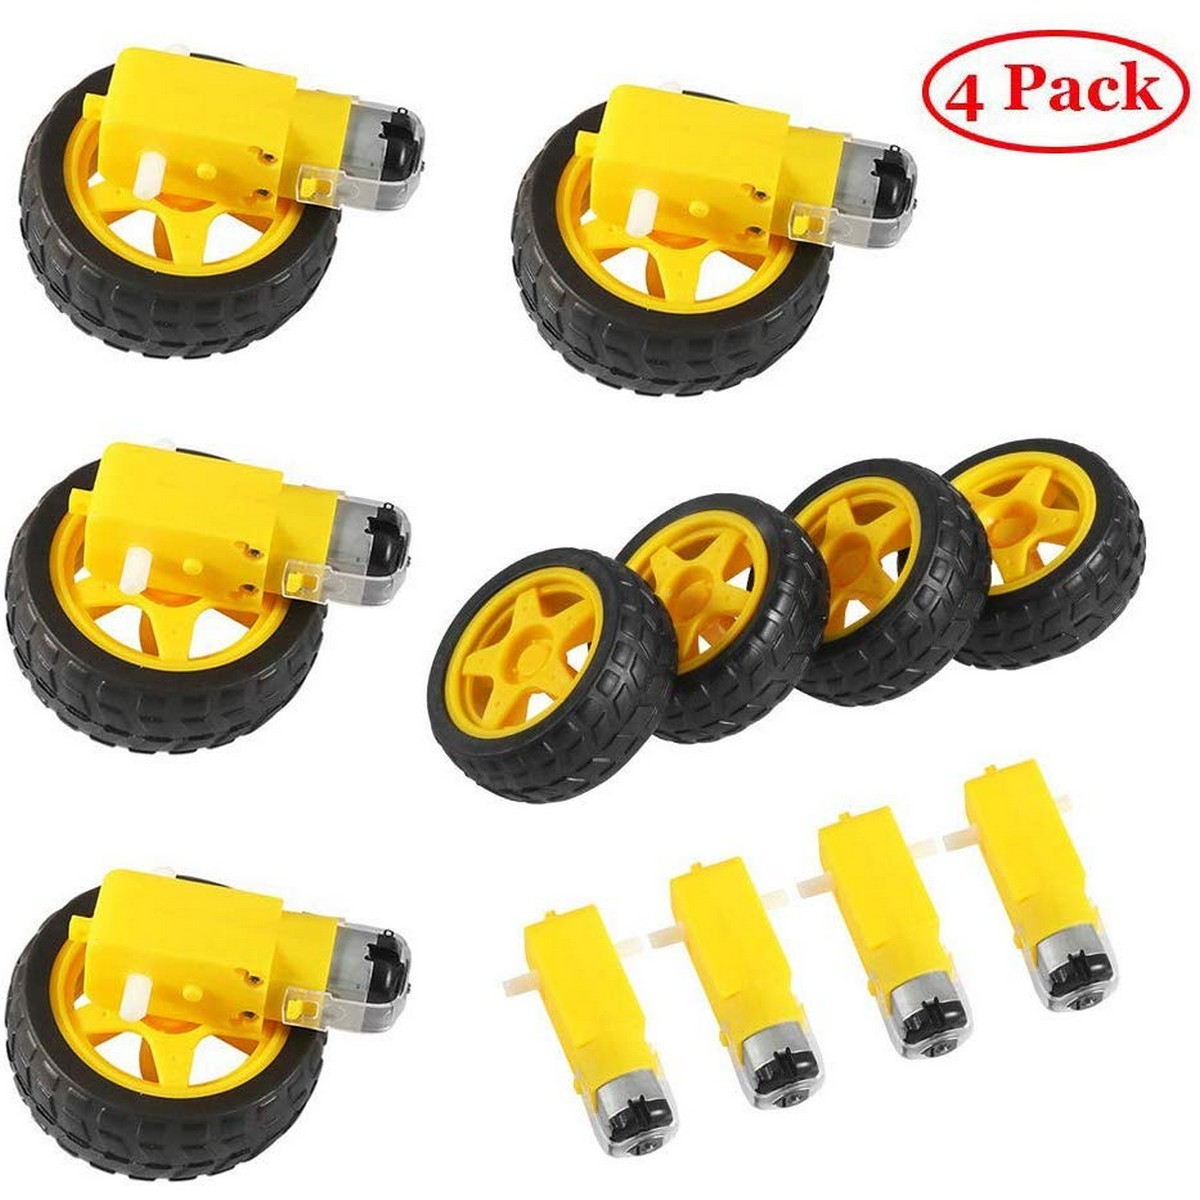 Pack of 8 : DC Gear Motor and Plastic Wheel 3∼6V Dual Shaft Smart Car Robot Geared TT Magnetic Gearbox Engine for Arduino Diy Kit 4 Motor and 4 Plastic Wheel